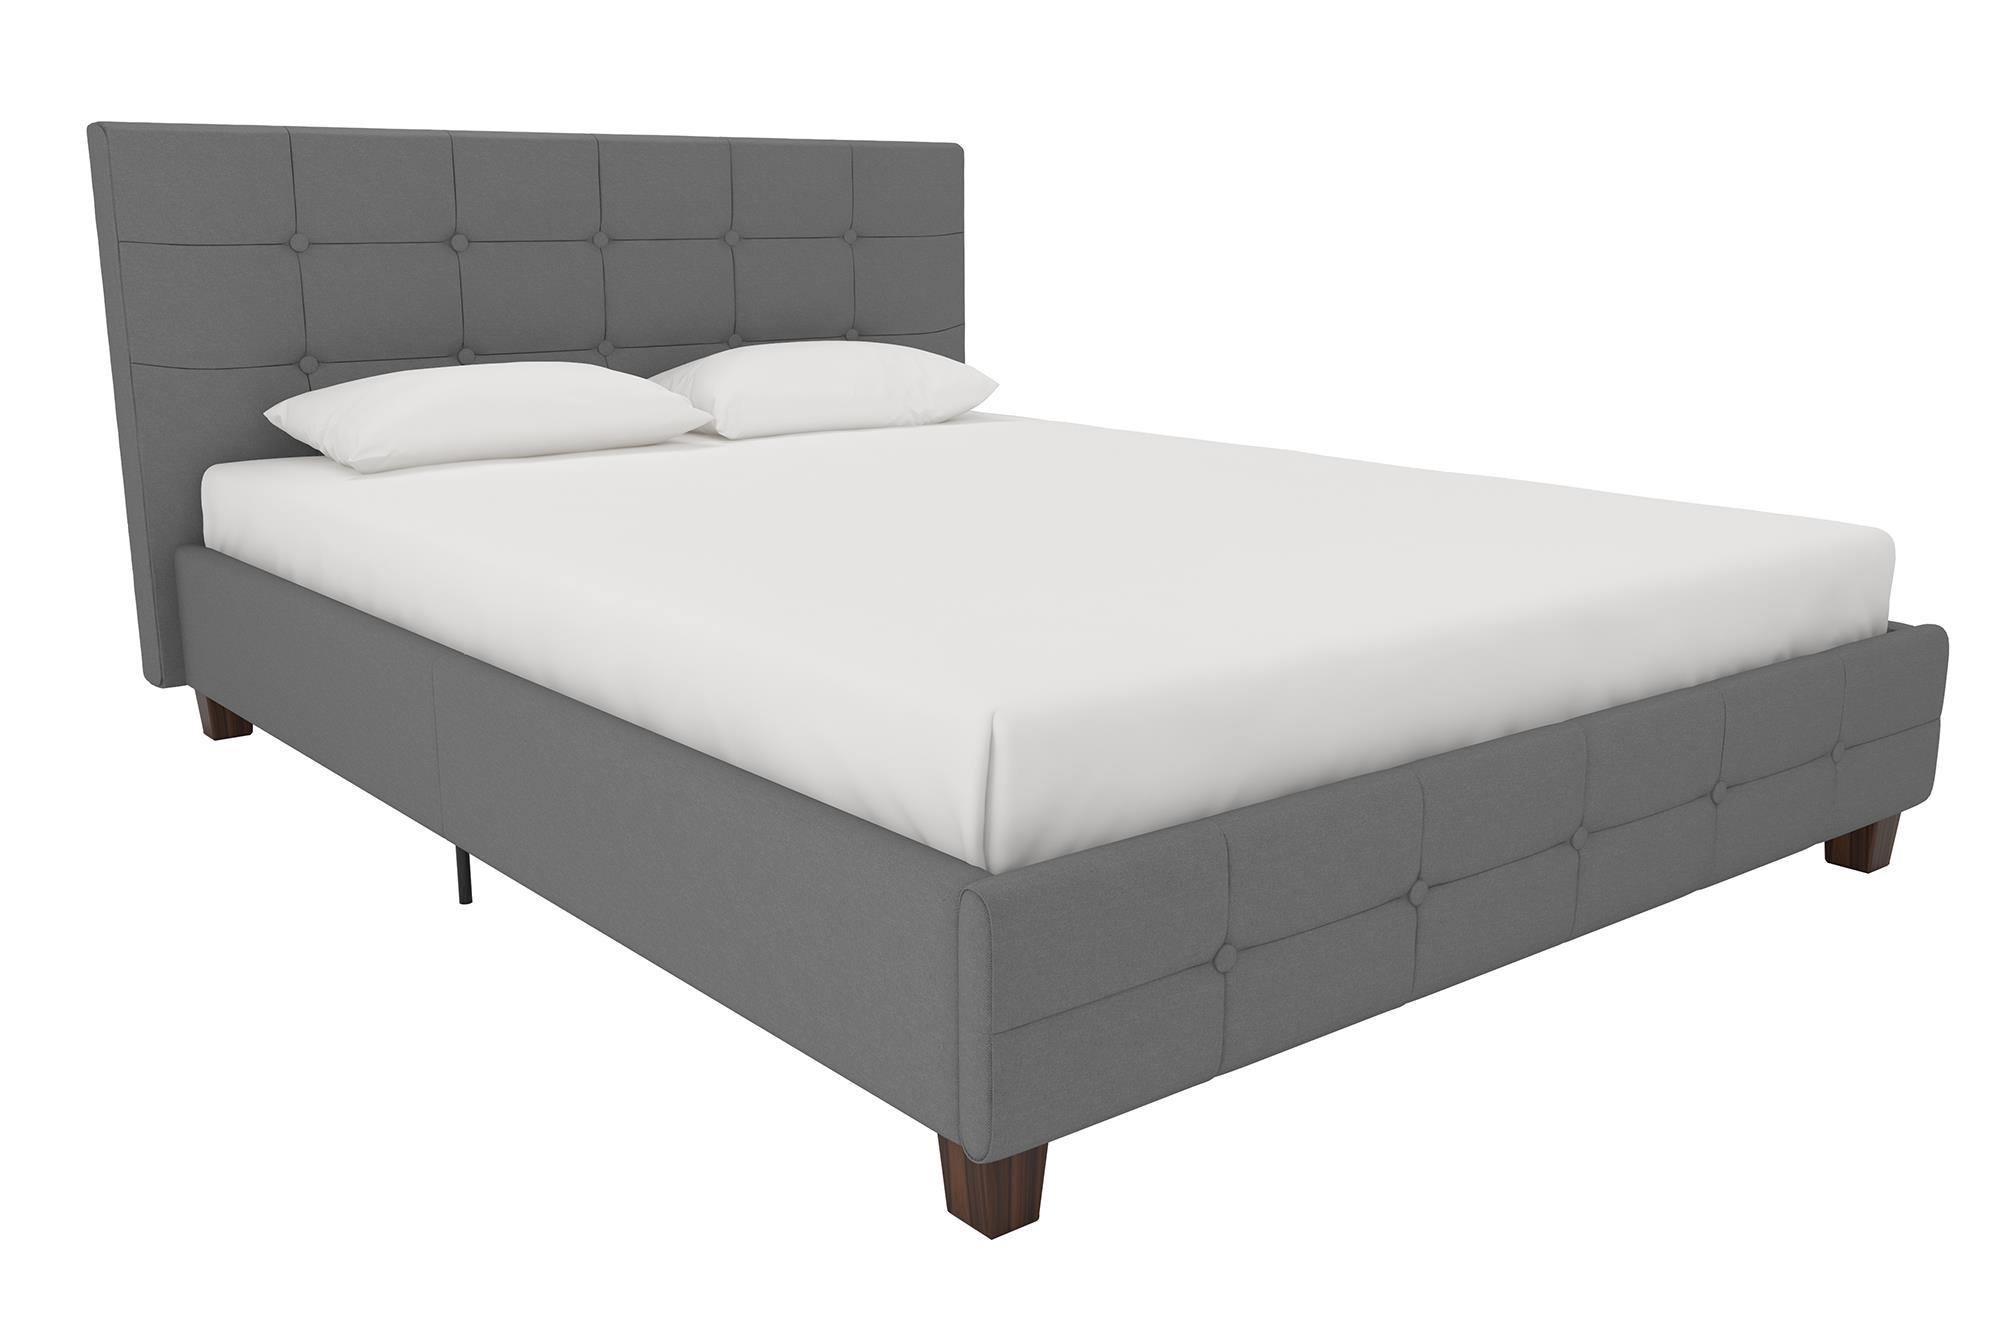 DHP Rose Linen Tufted Upholstered Platform Bed, Button Tufted Headboard and Footboard with Wooden Slats, Multiple... by Dorel Home Products